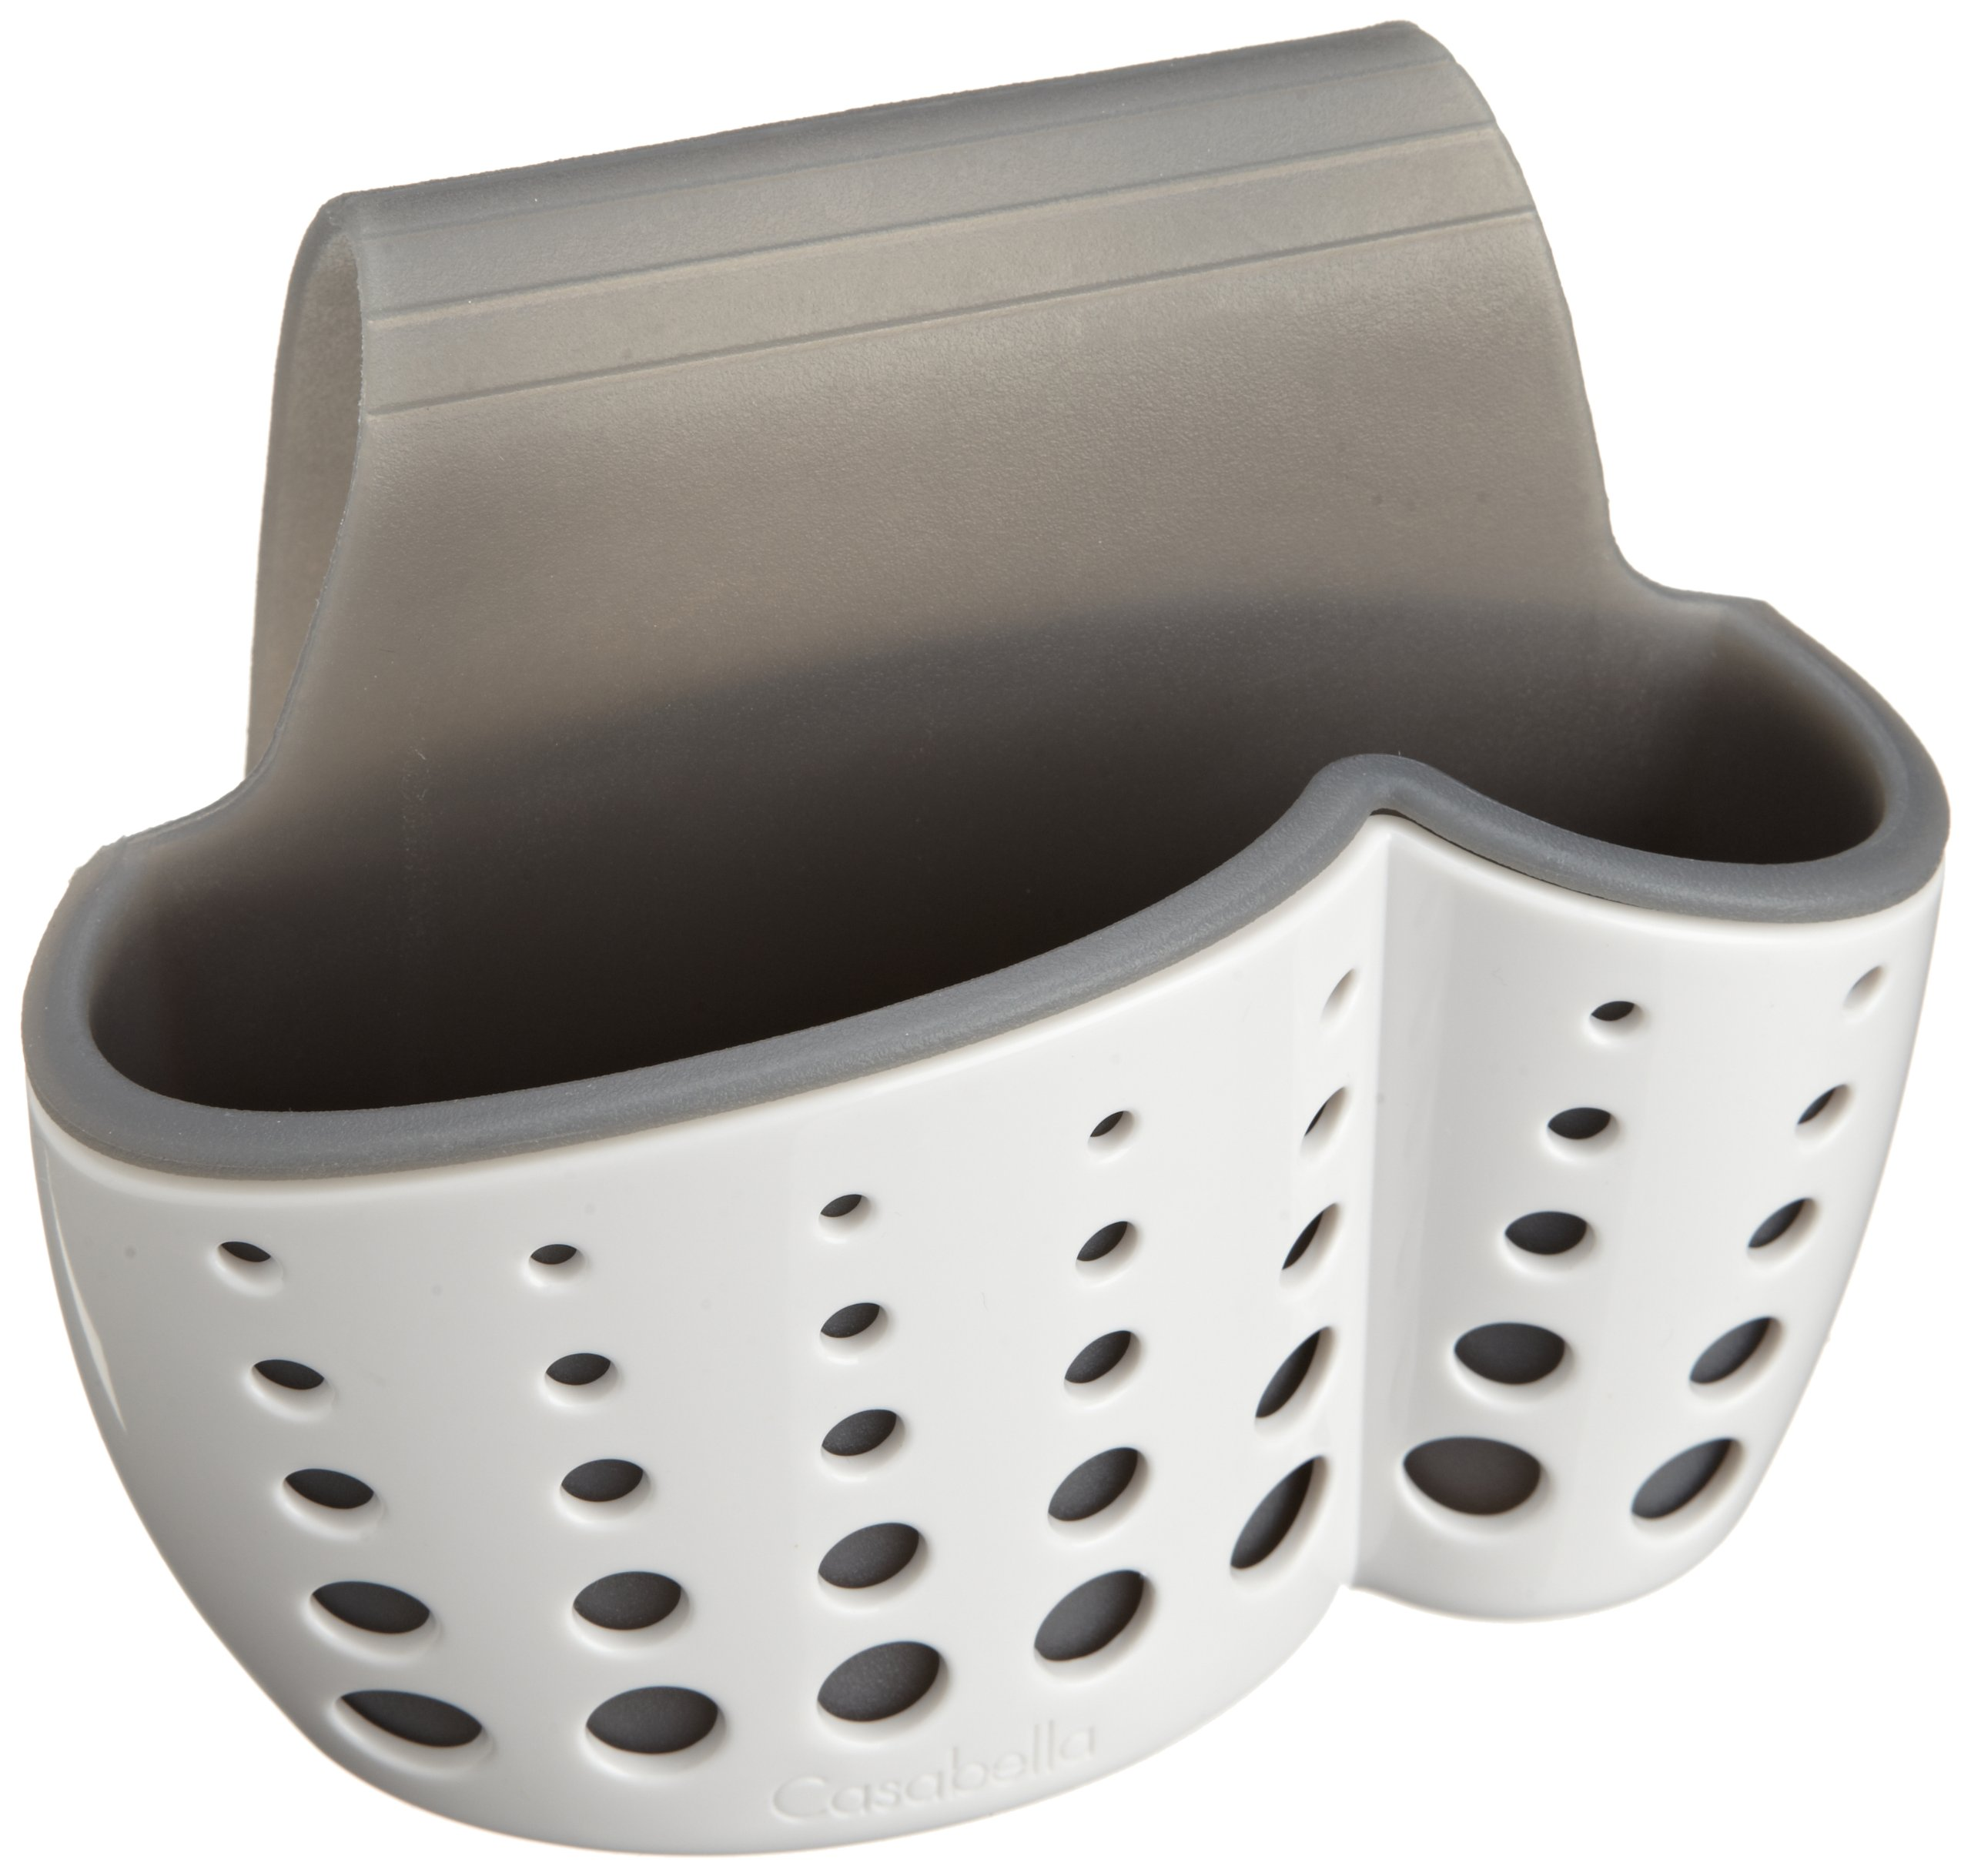 Sink Sider Faucet Caddy Sponge Holder For Scrubbers